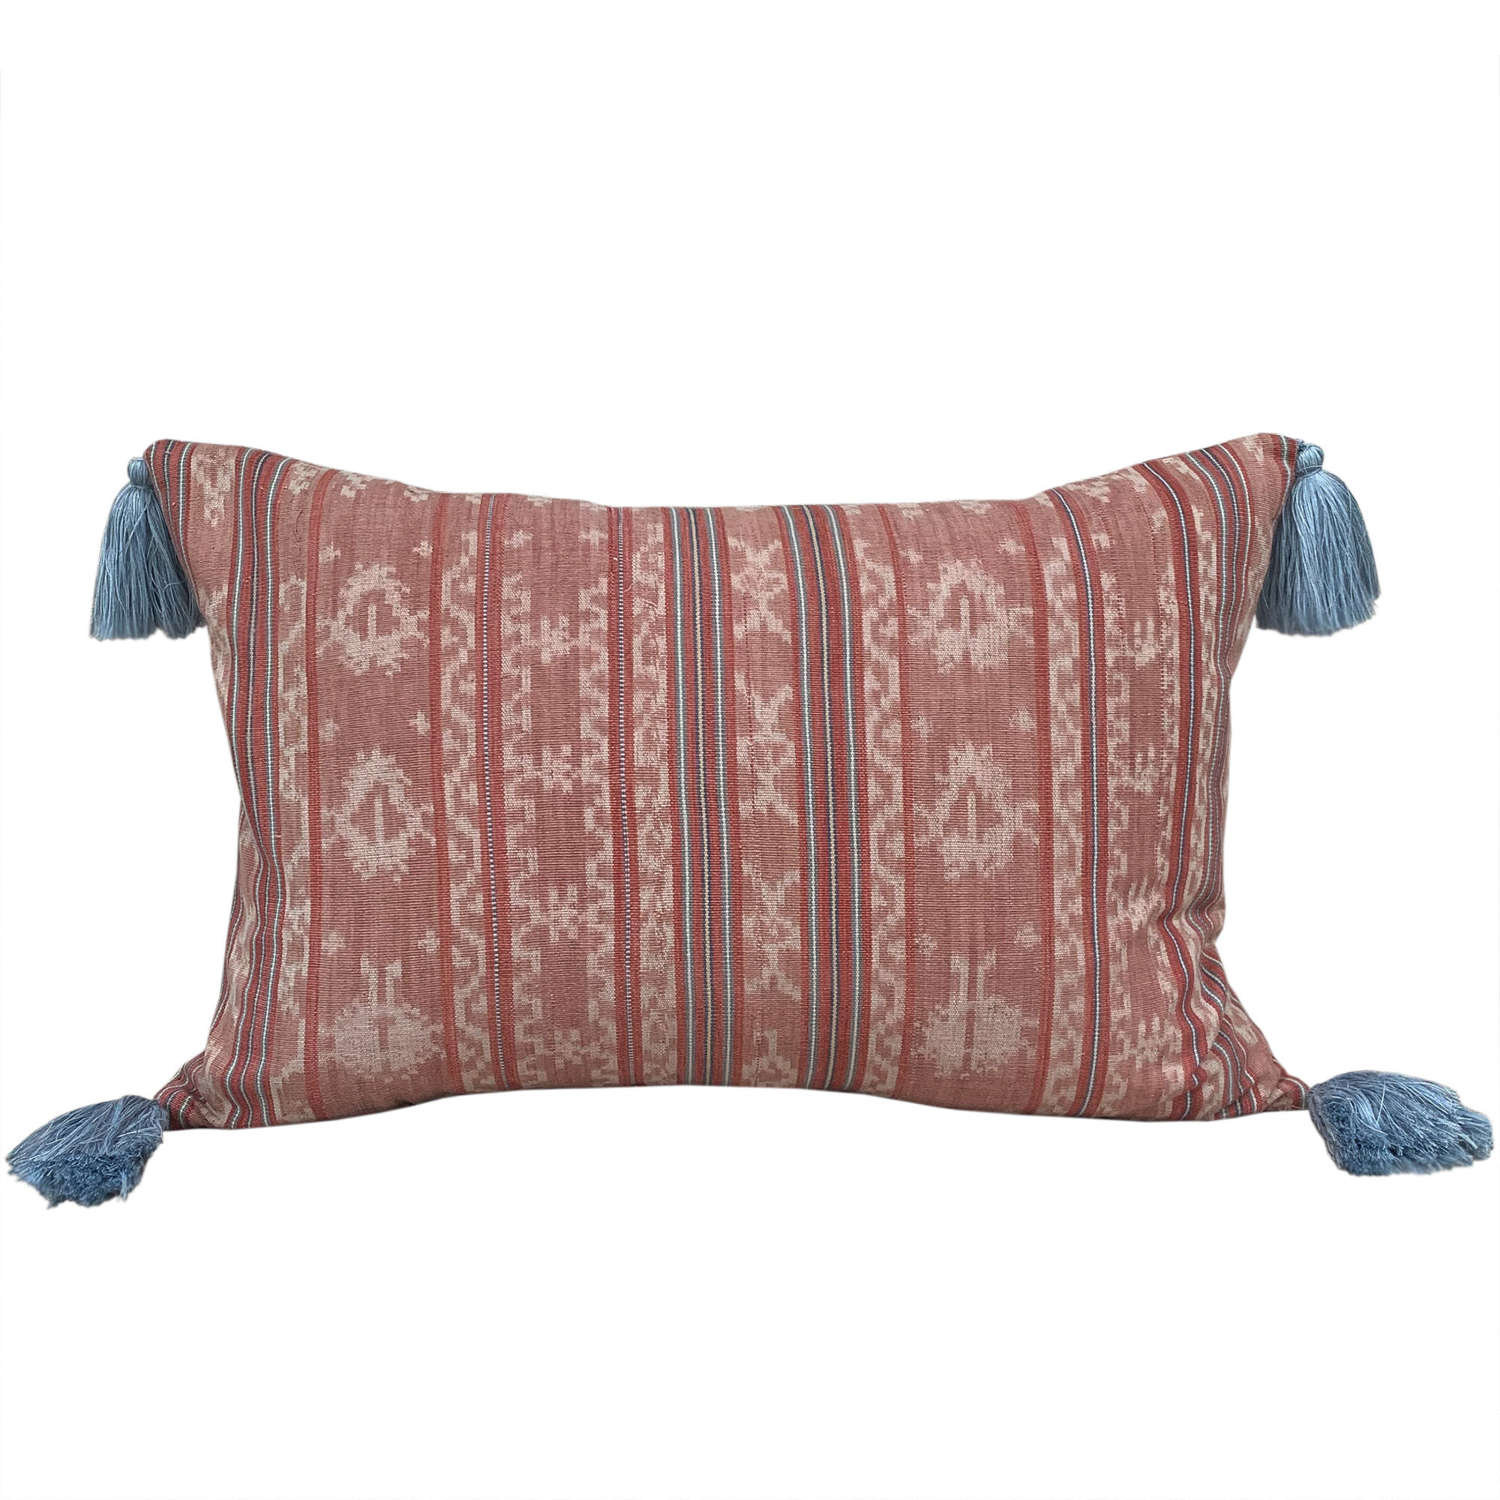 Pink Flores ikat cushion with tassels